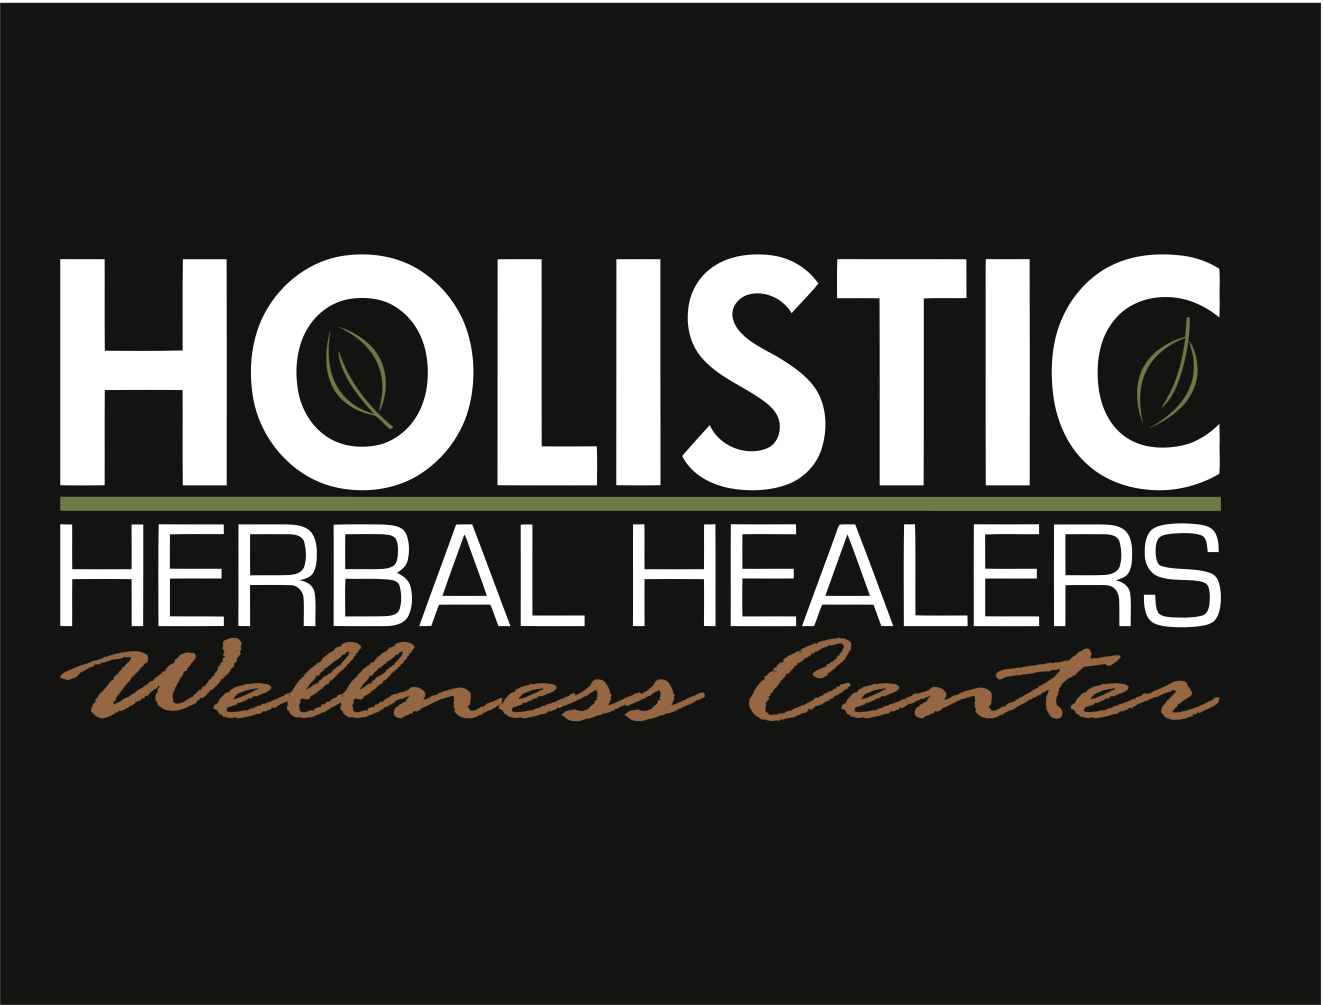 Holistic Herbal Healers